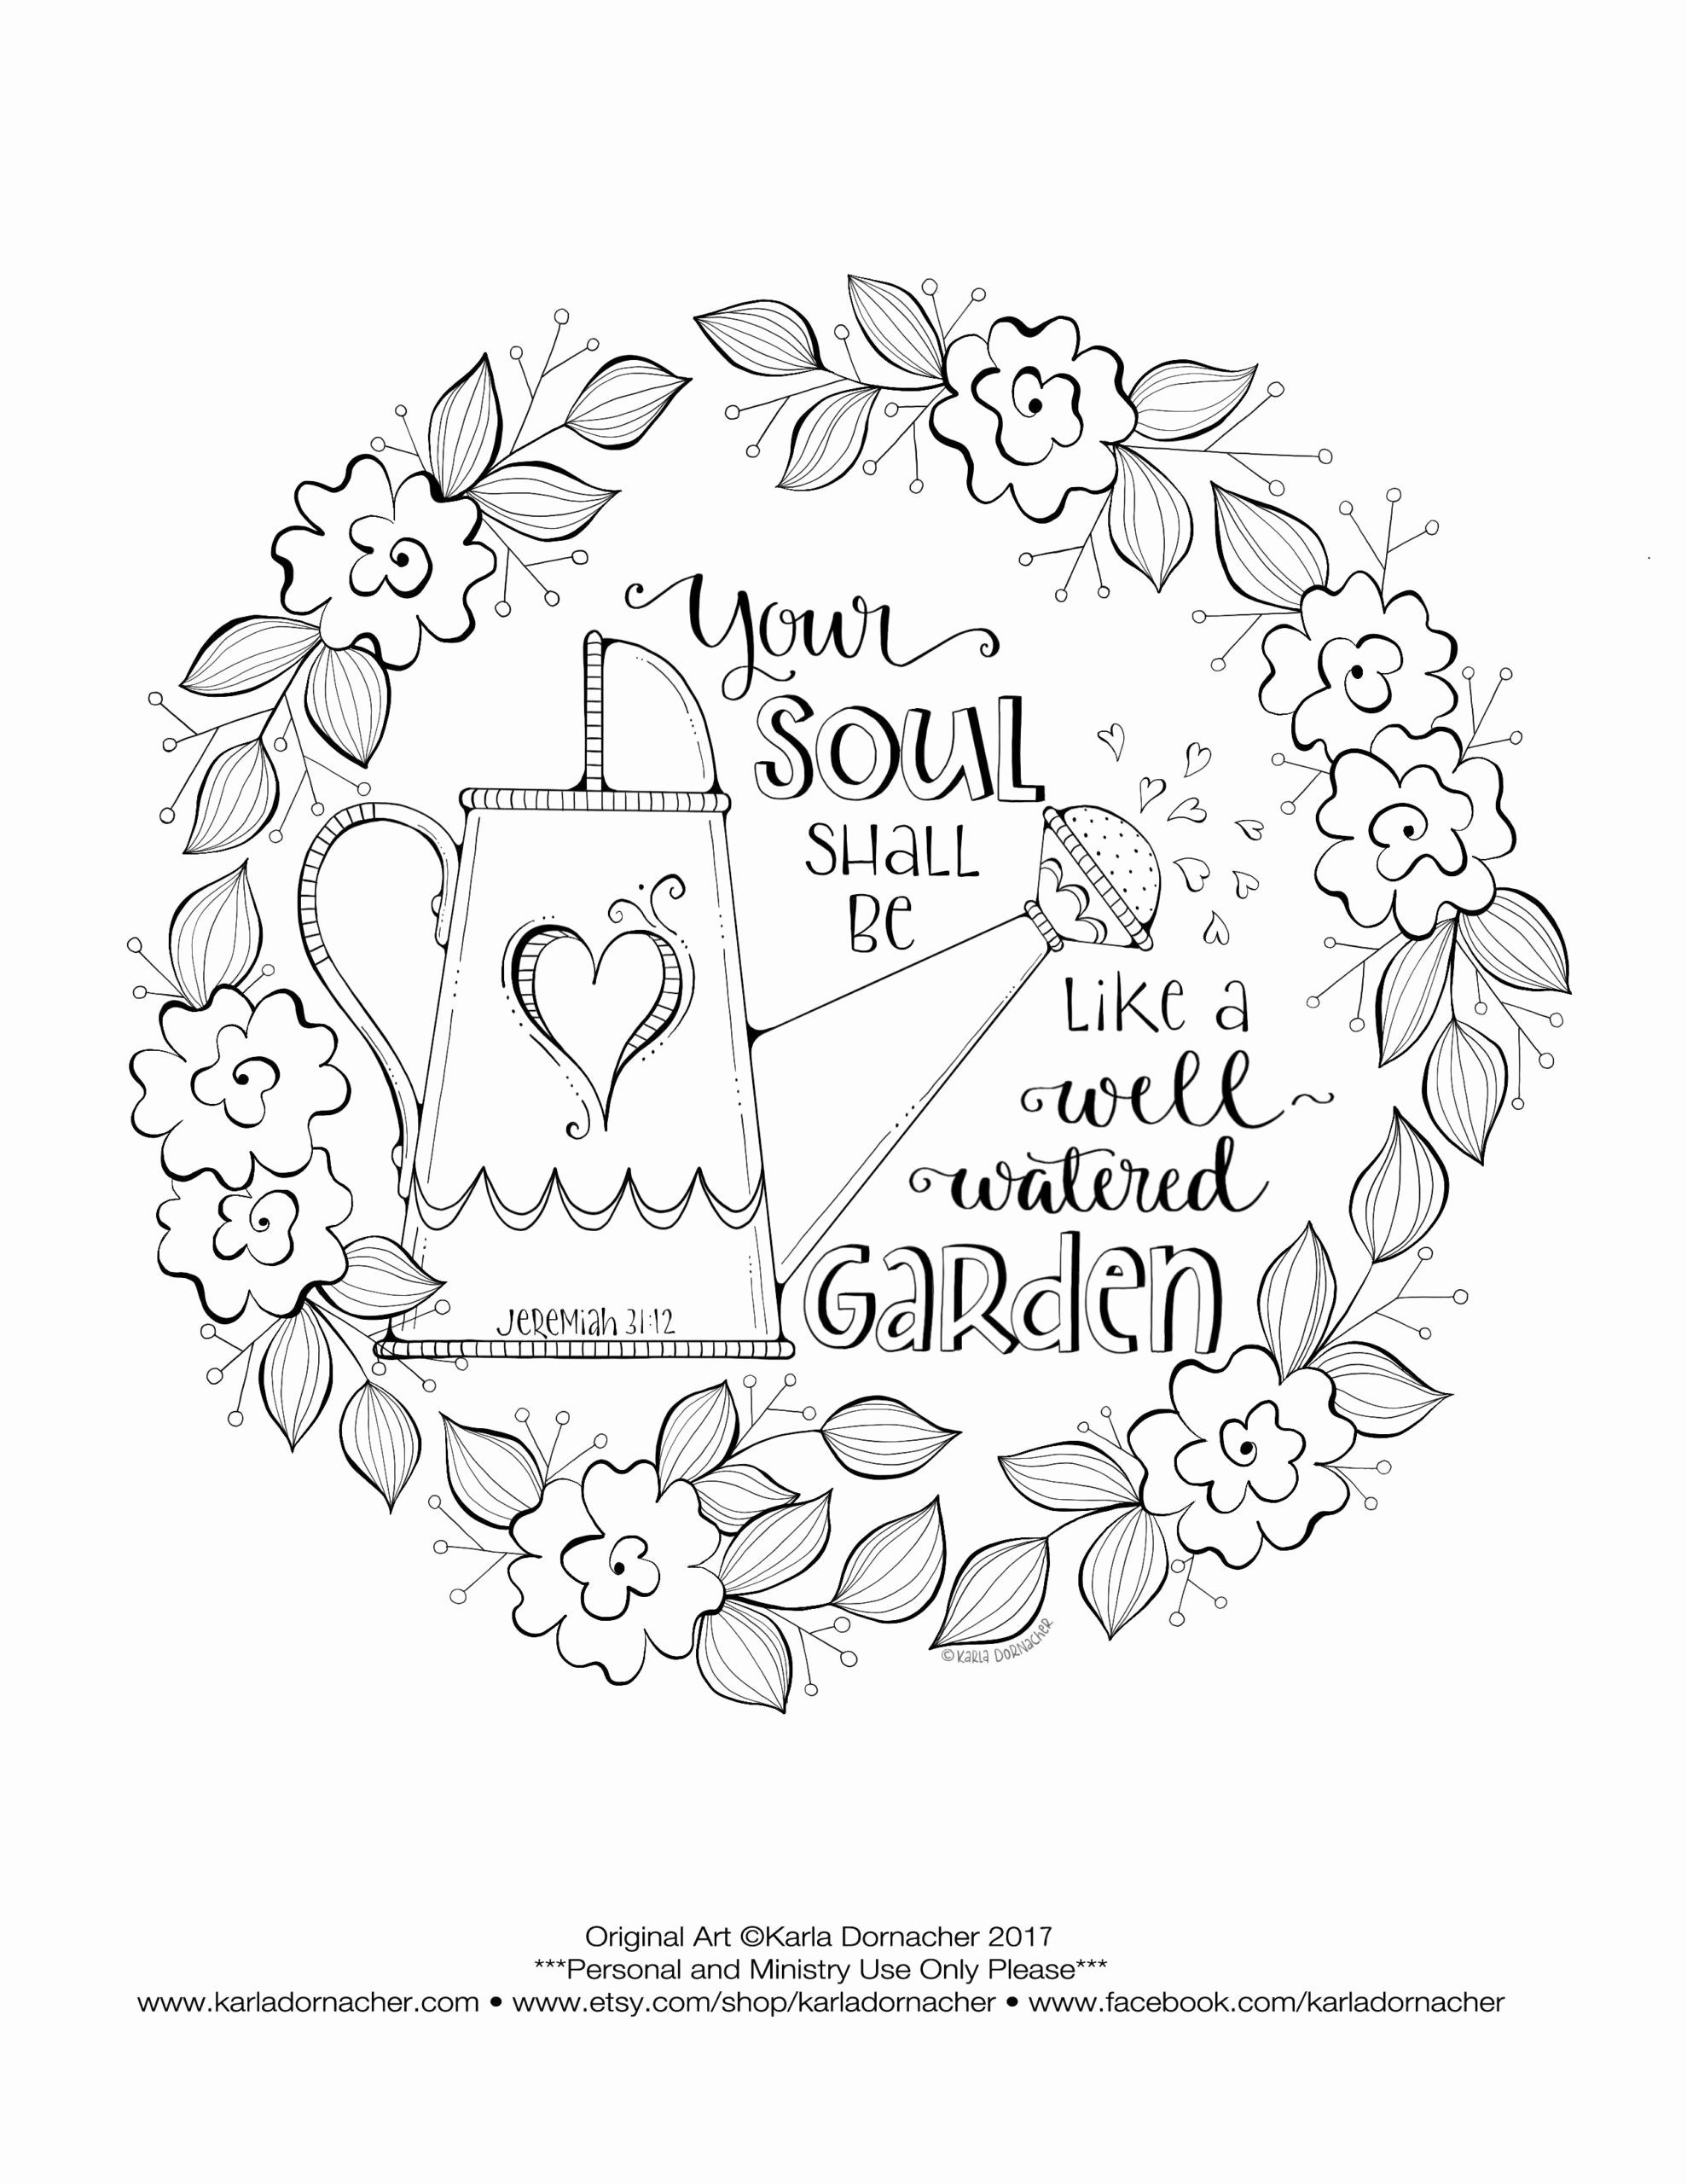 Science Coloring Pages For Kindergarten Thaifree Coloring Bible Verse Coloring Page Bible Verse Coloring Bible Coloring Pages